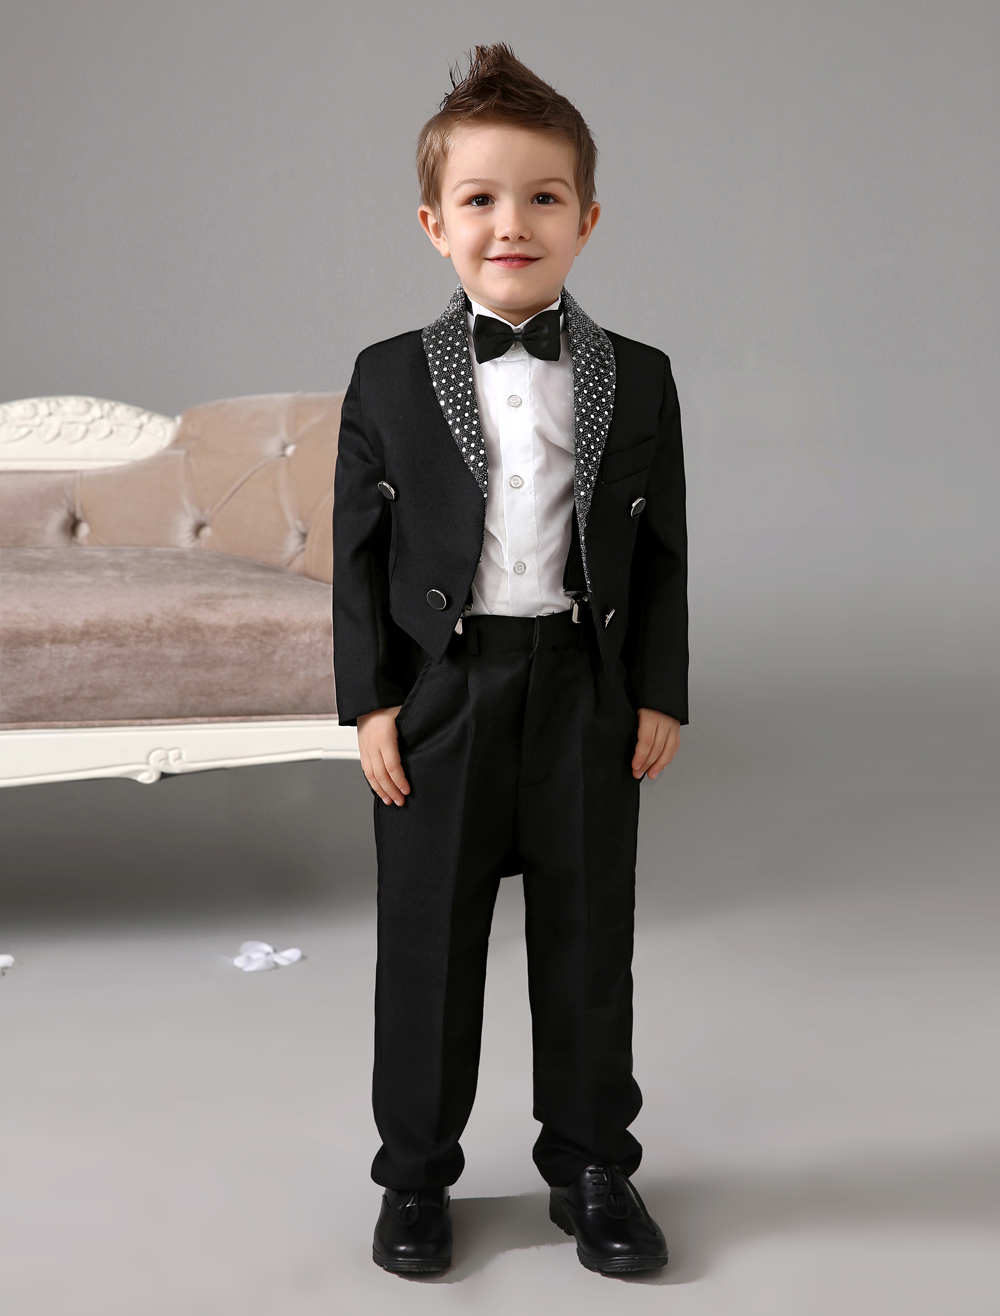 Four Pieces Luxurious formal Black boys suits kids Tuxedo With Black Bow Tie boys outfit wedding